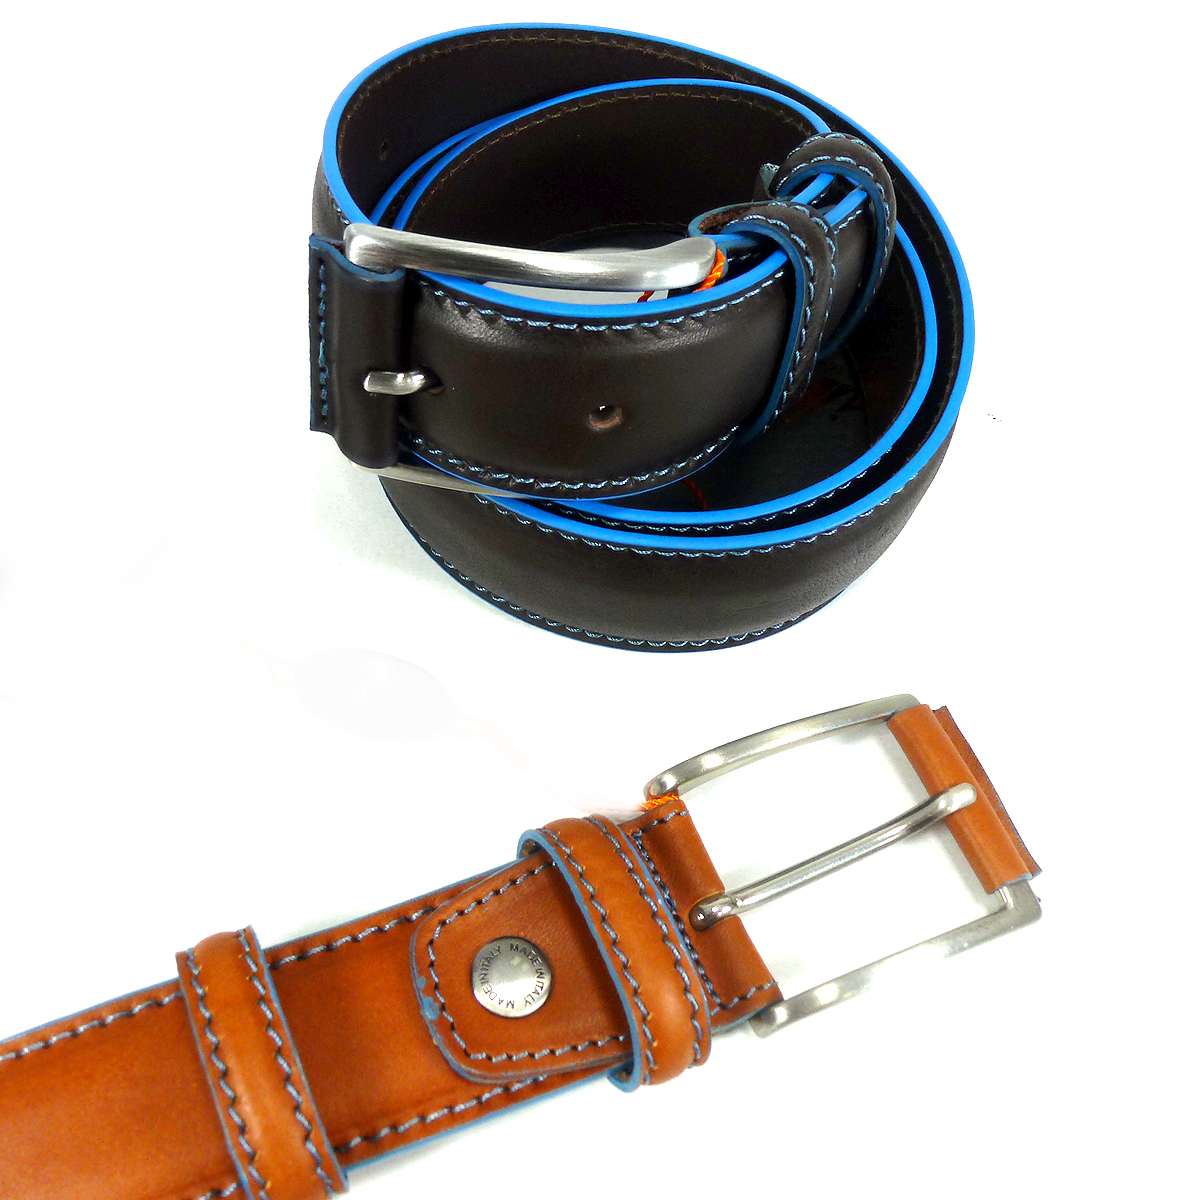 6242135 Double belt loops by Bottega Fiorentina